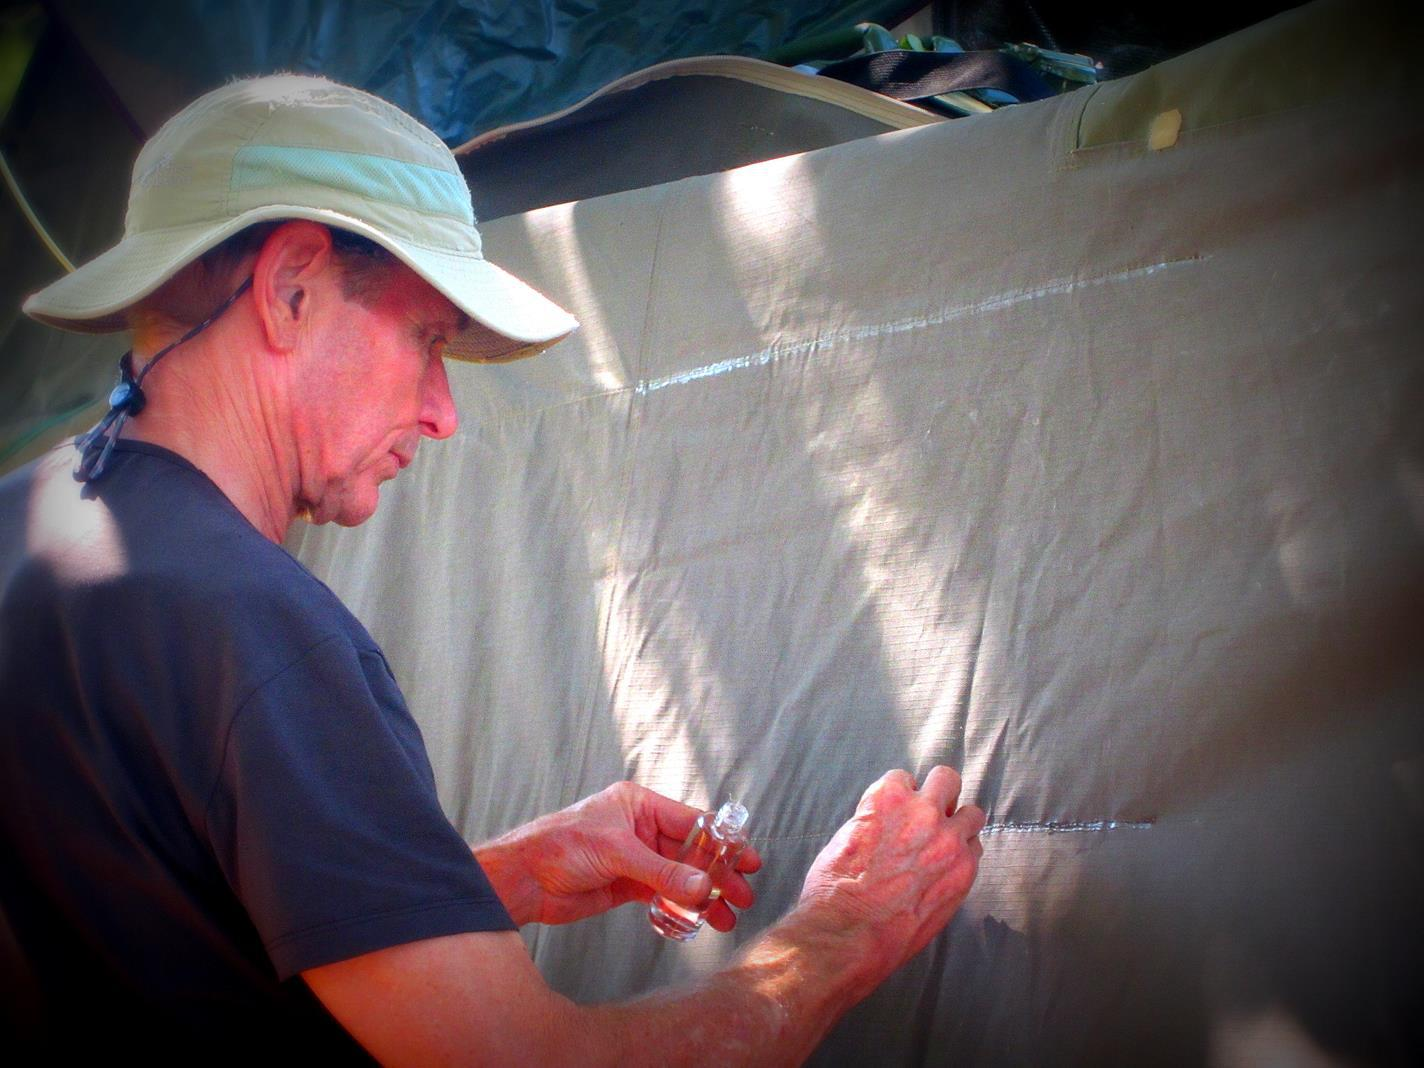 Pete waterproofing the awning.